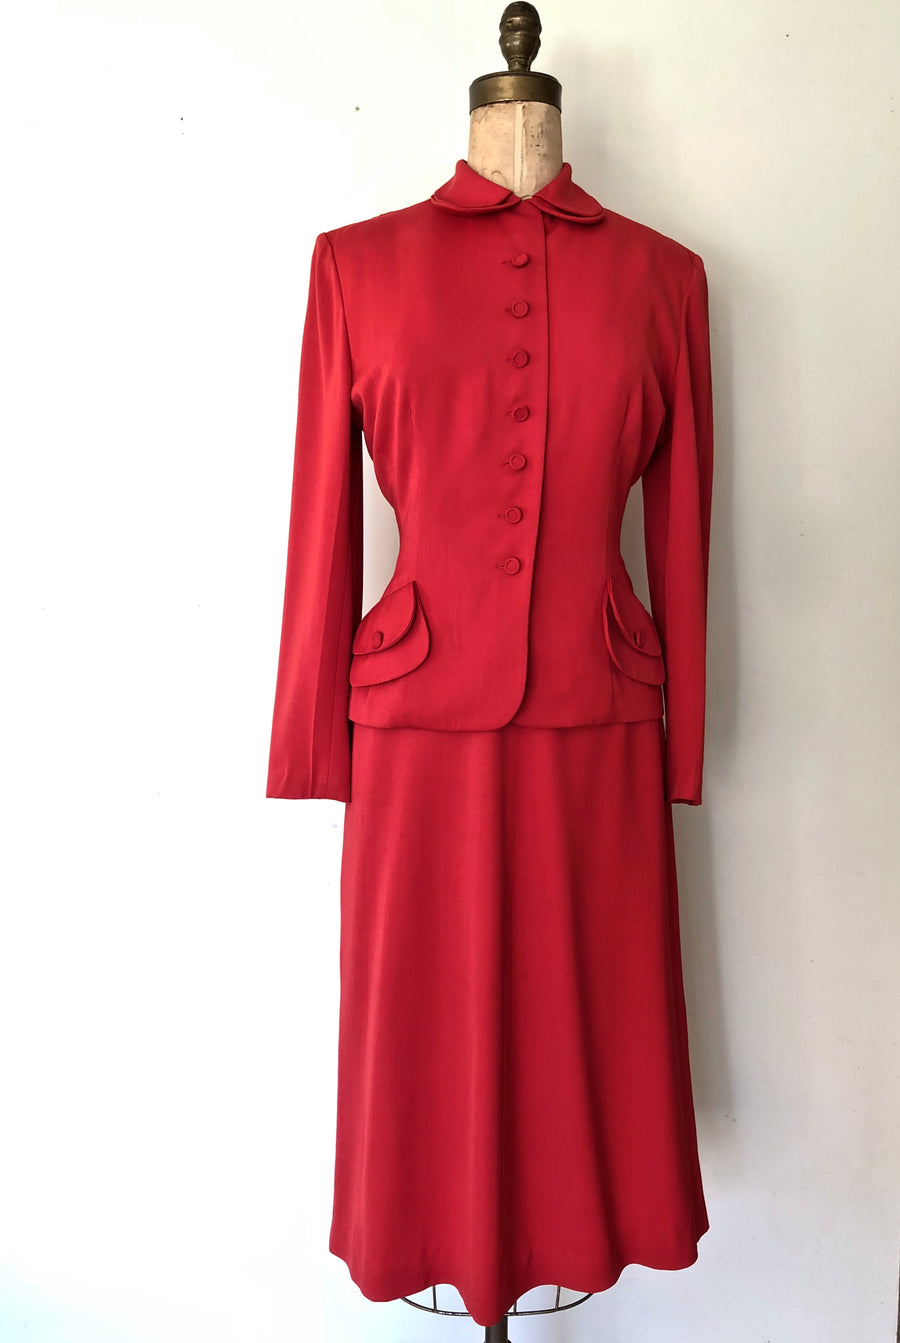 1940's Red Hot Suit - 40's 2 PC Set - Size M